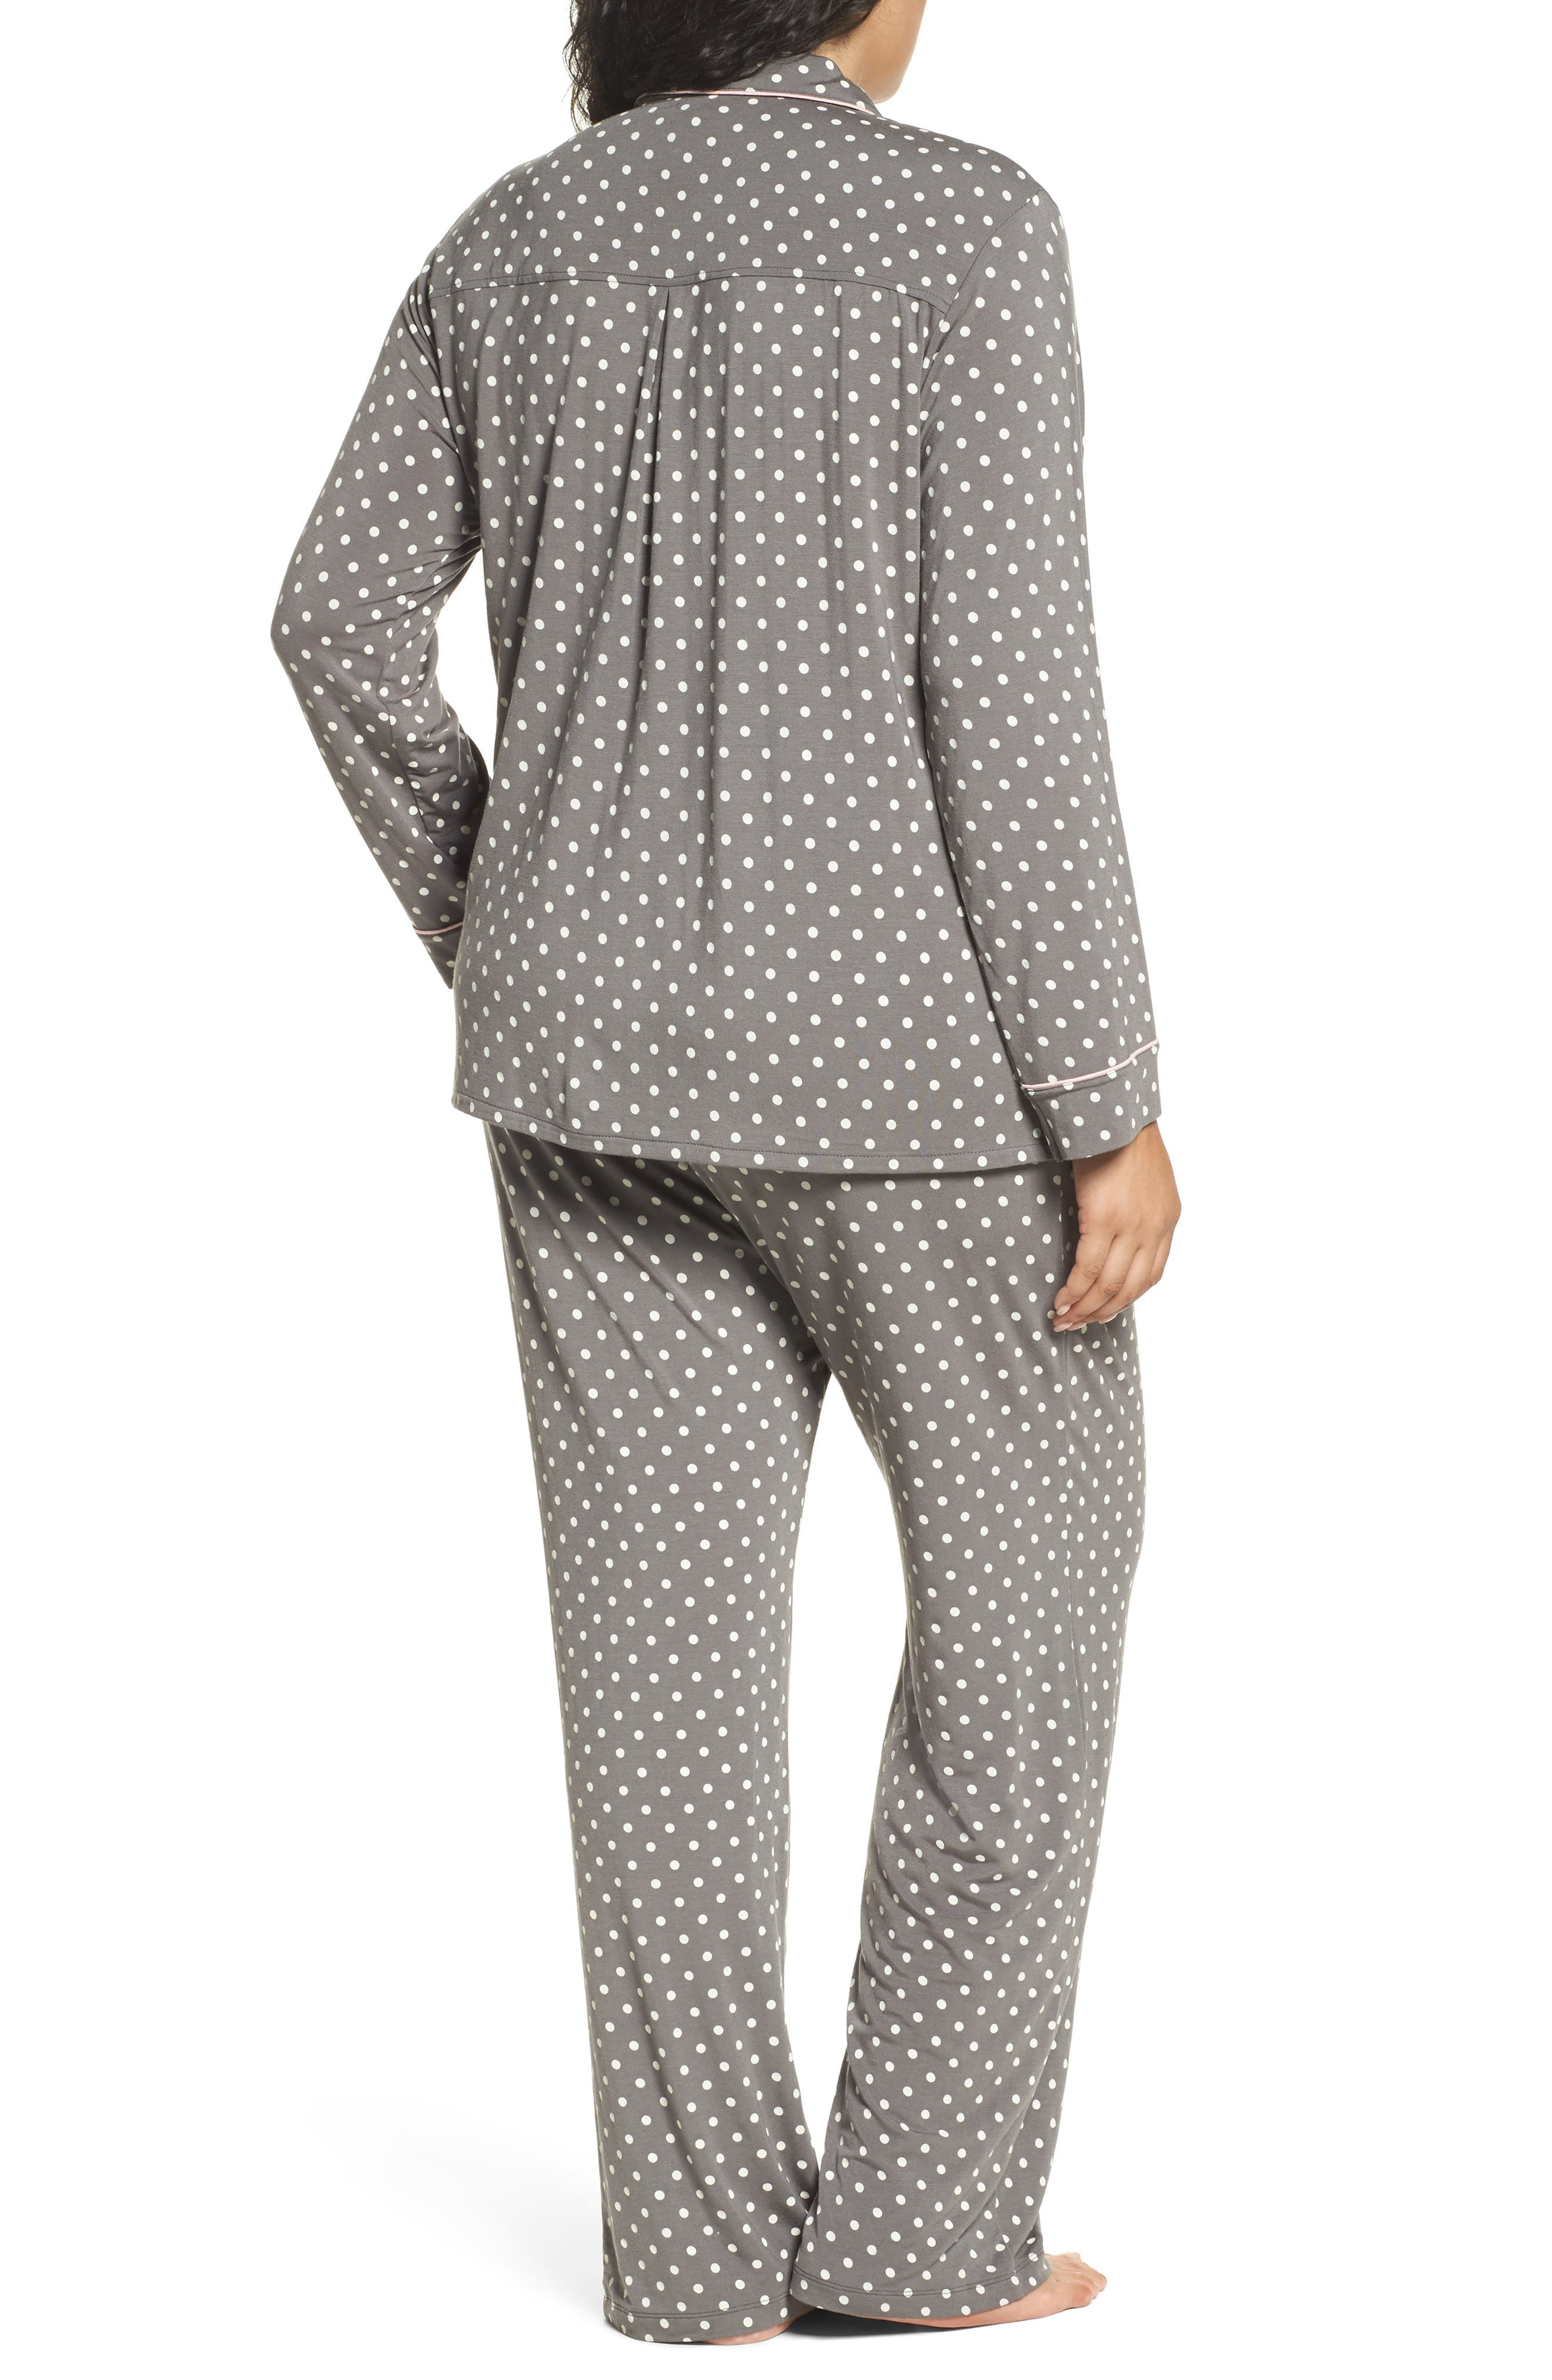 Polka Dot Pajamas,                             Alternate thumbnail 2, color,